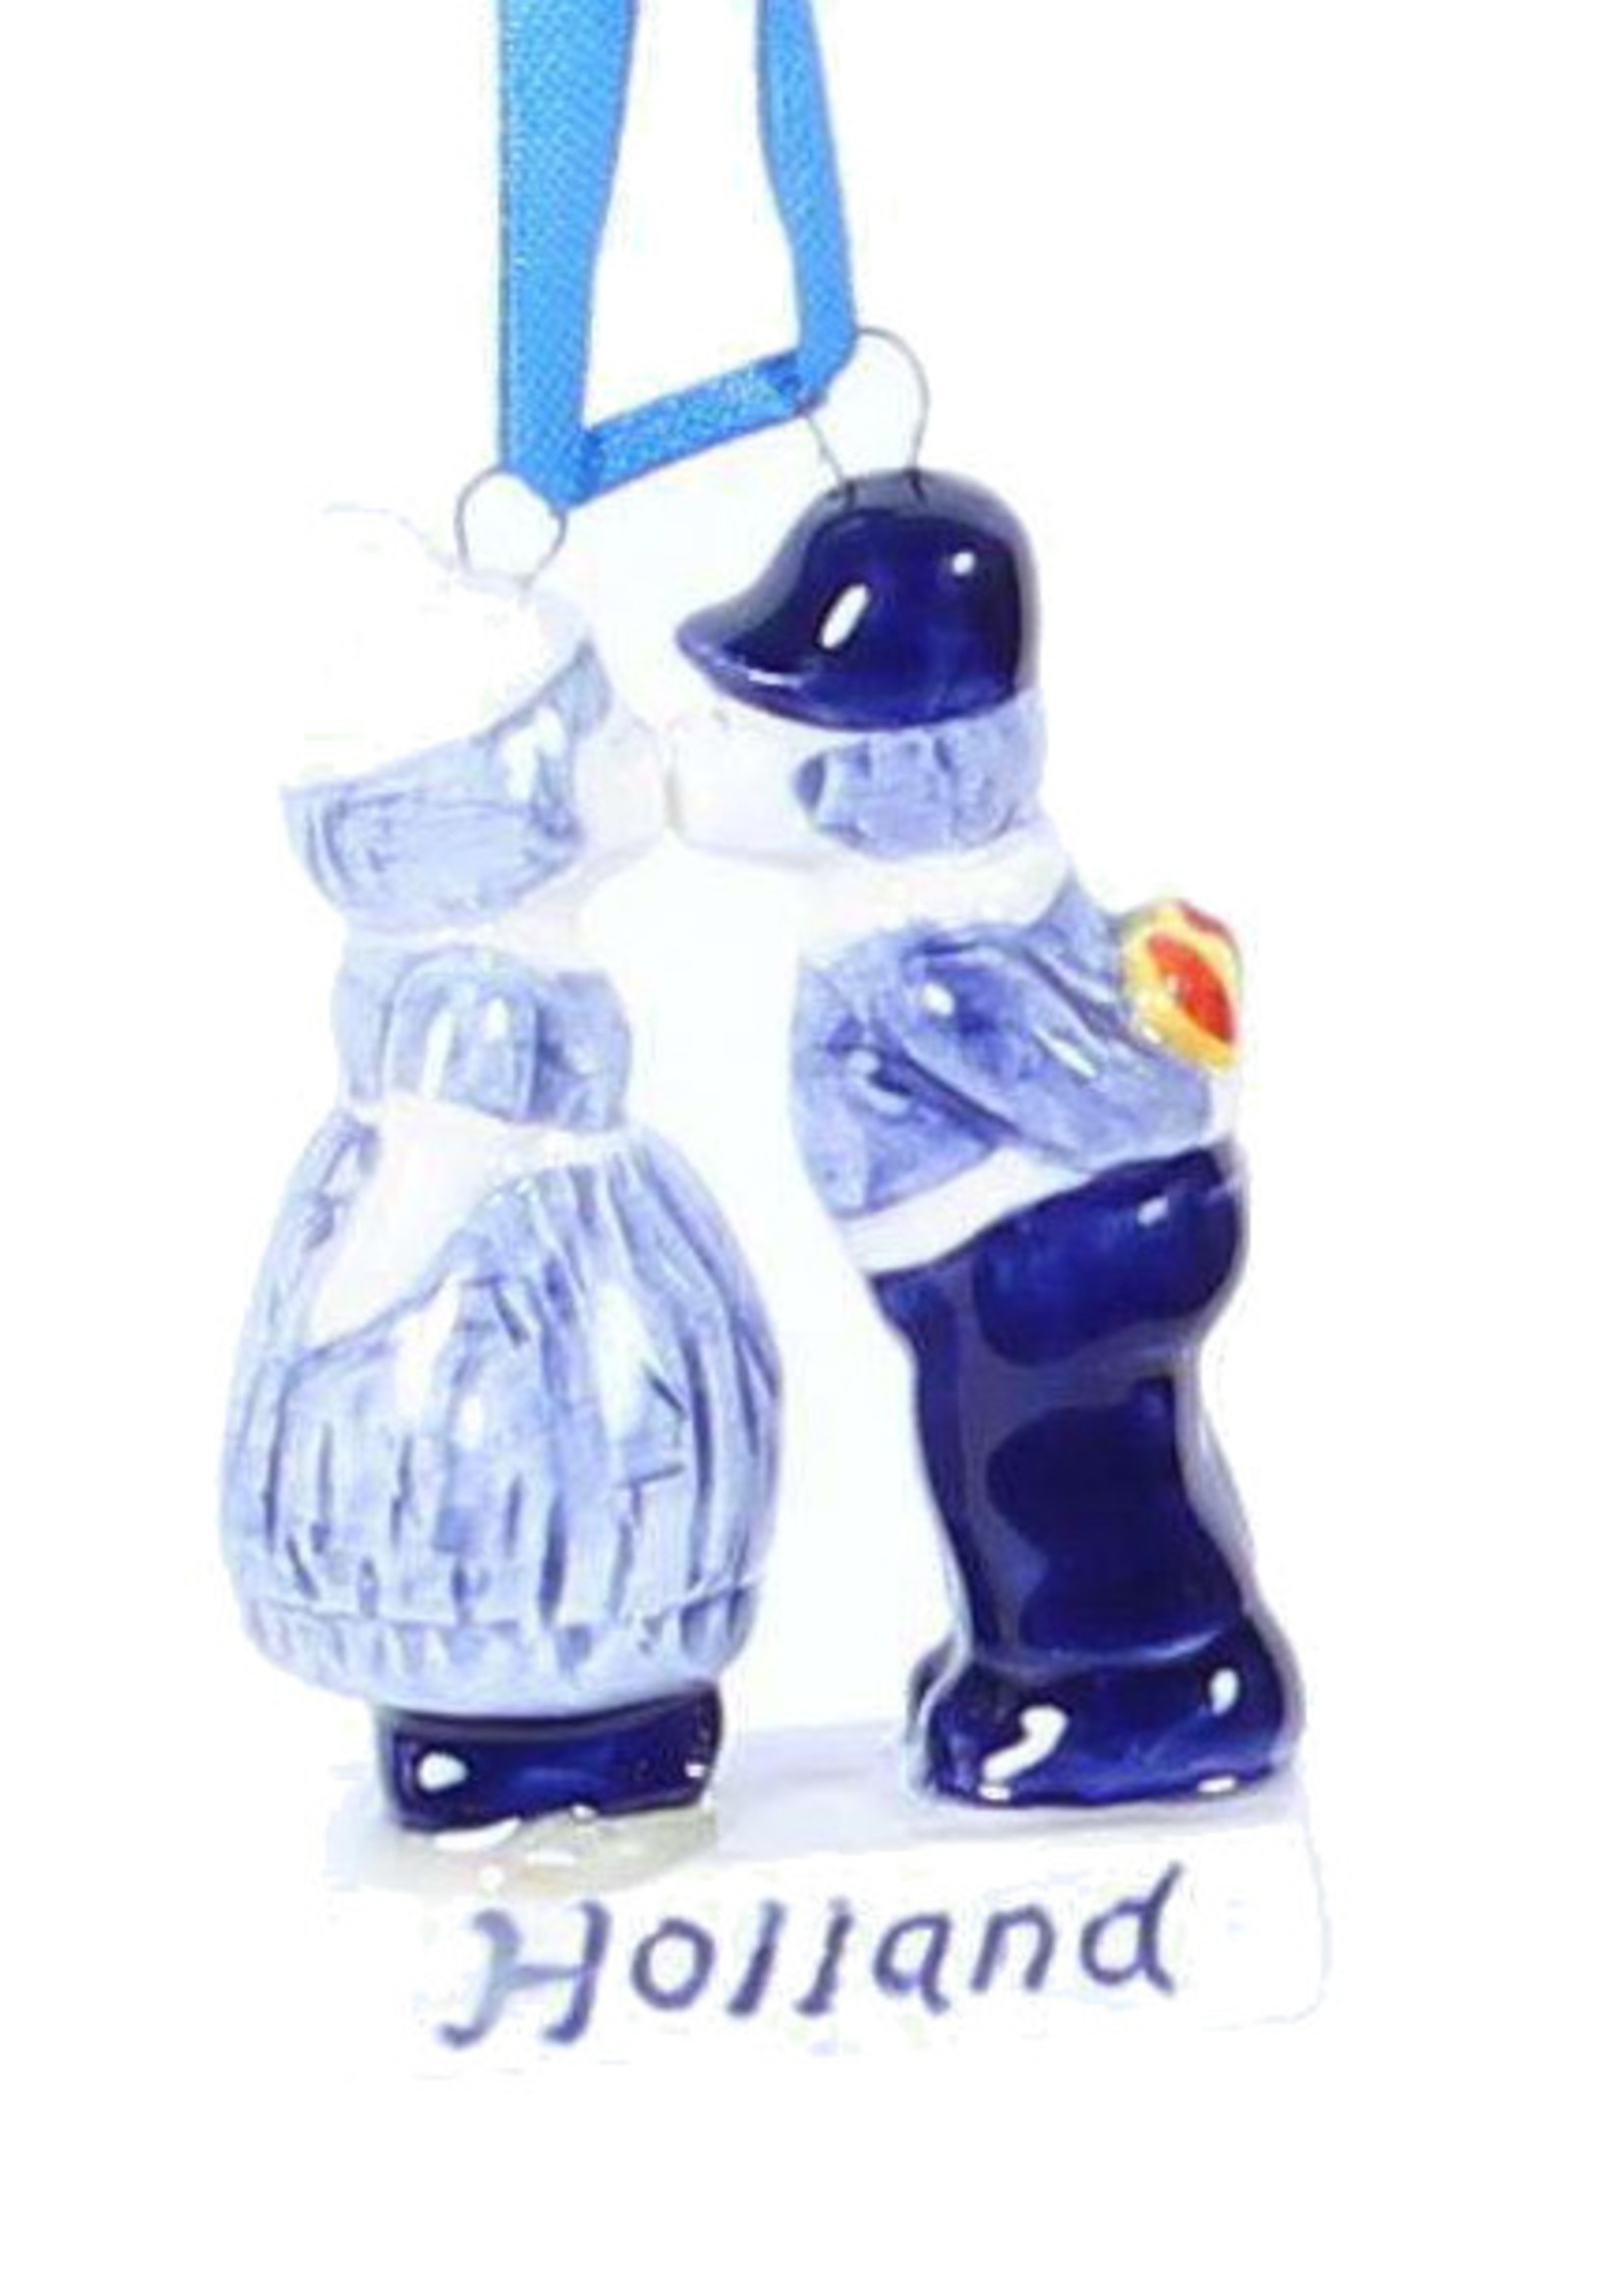 Christmas Ornament, Delft Blue, Kissing Couple